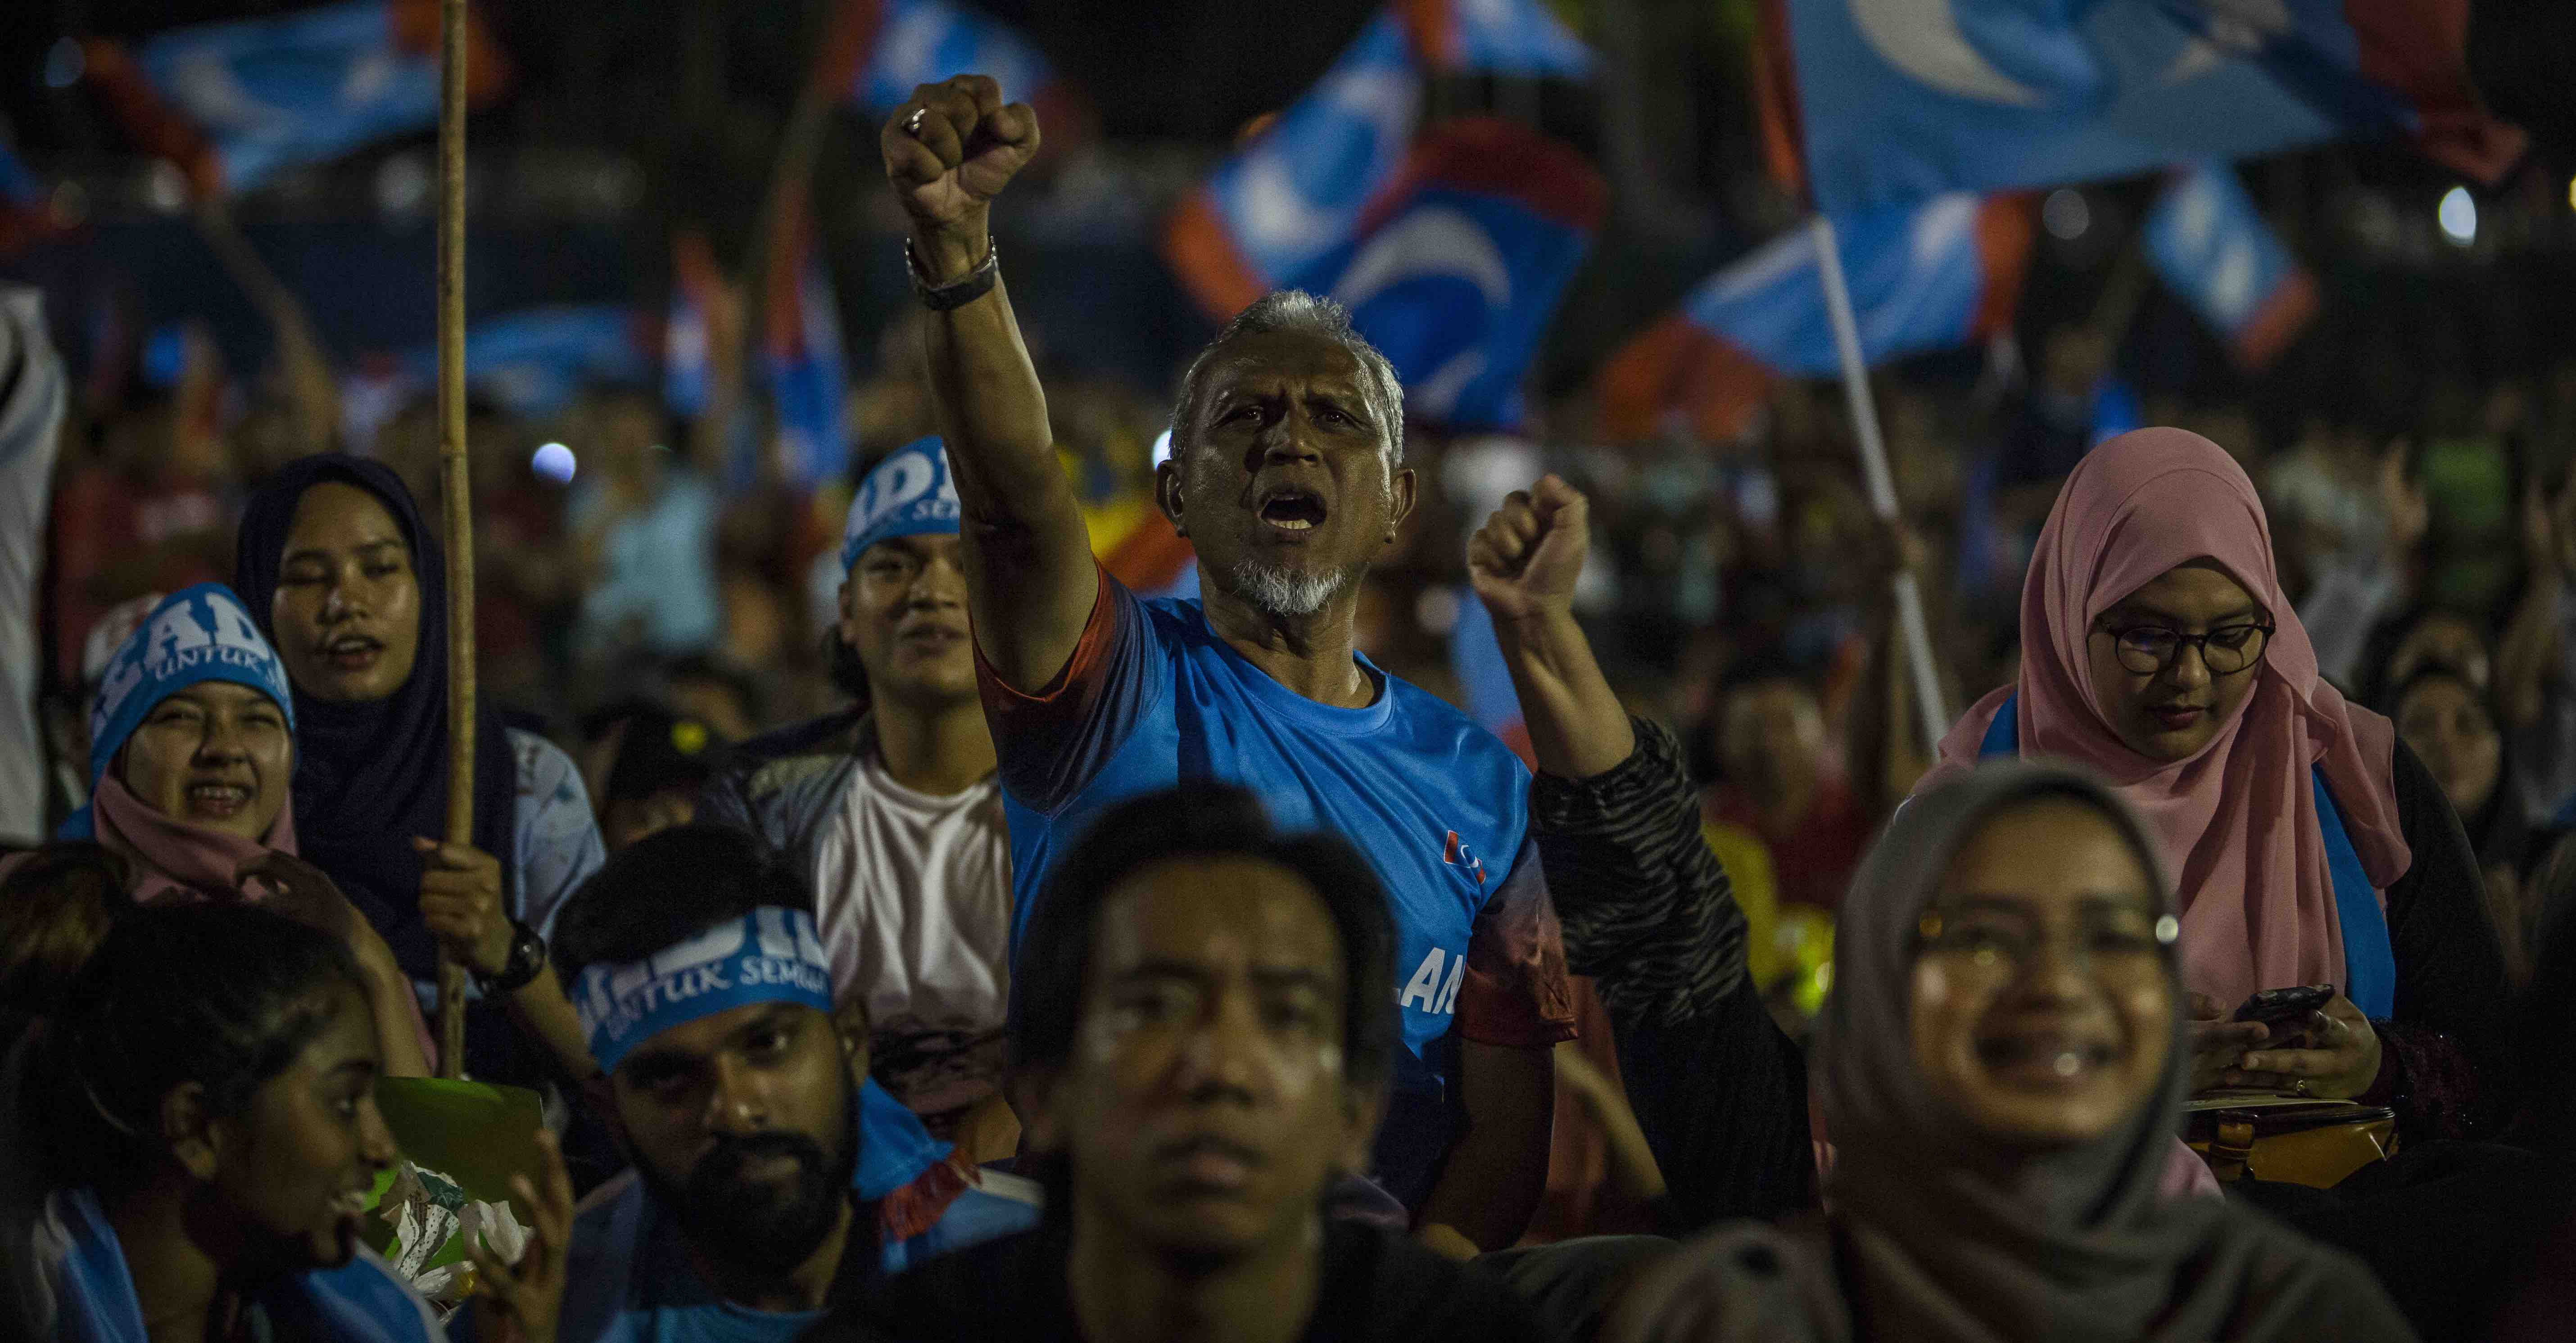 Supporters of Mahathir Mohamad as Malaysia's election results are announced on Wednesday (Photo: Ulet Ifansasti/Getty)